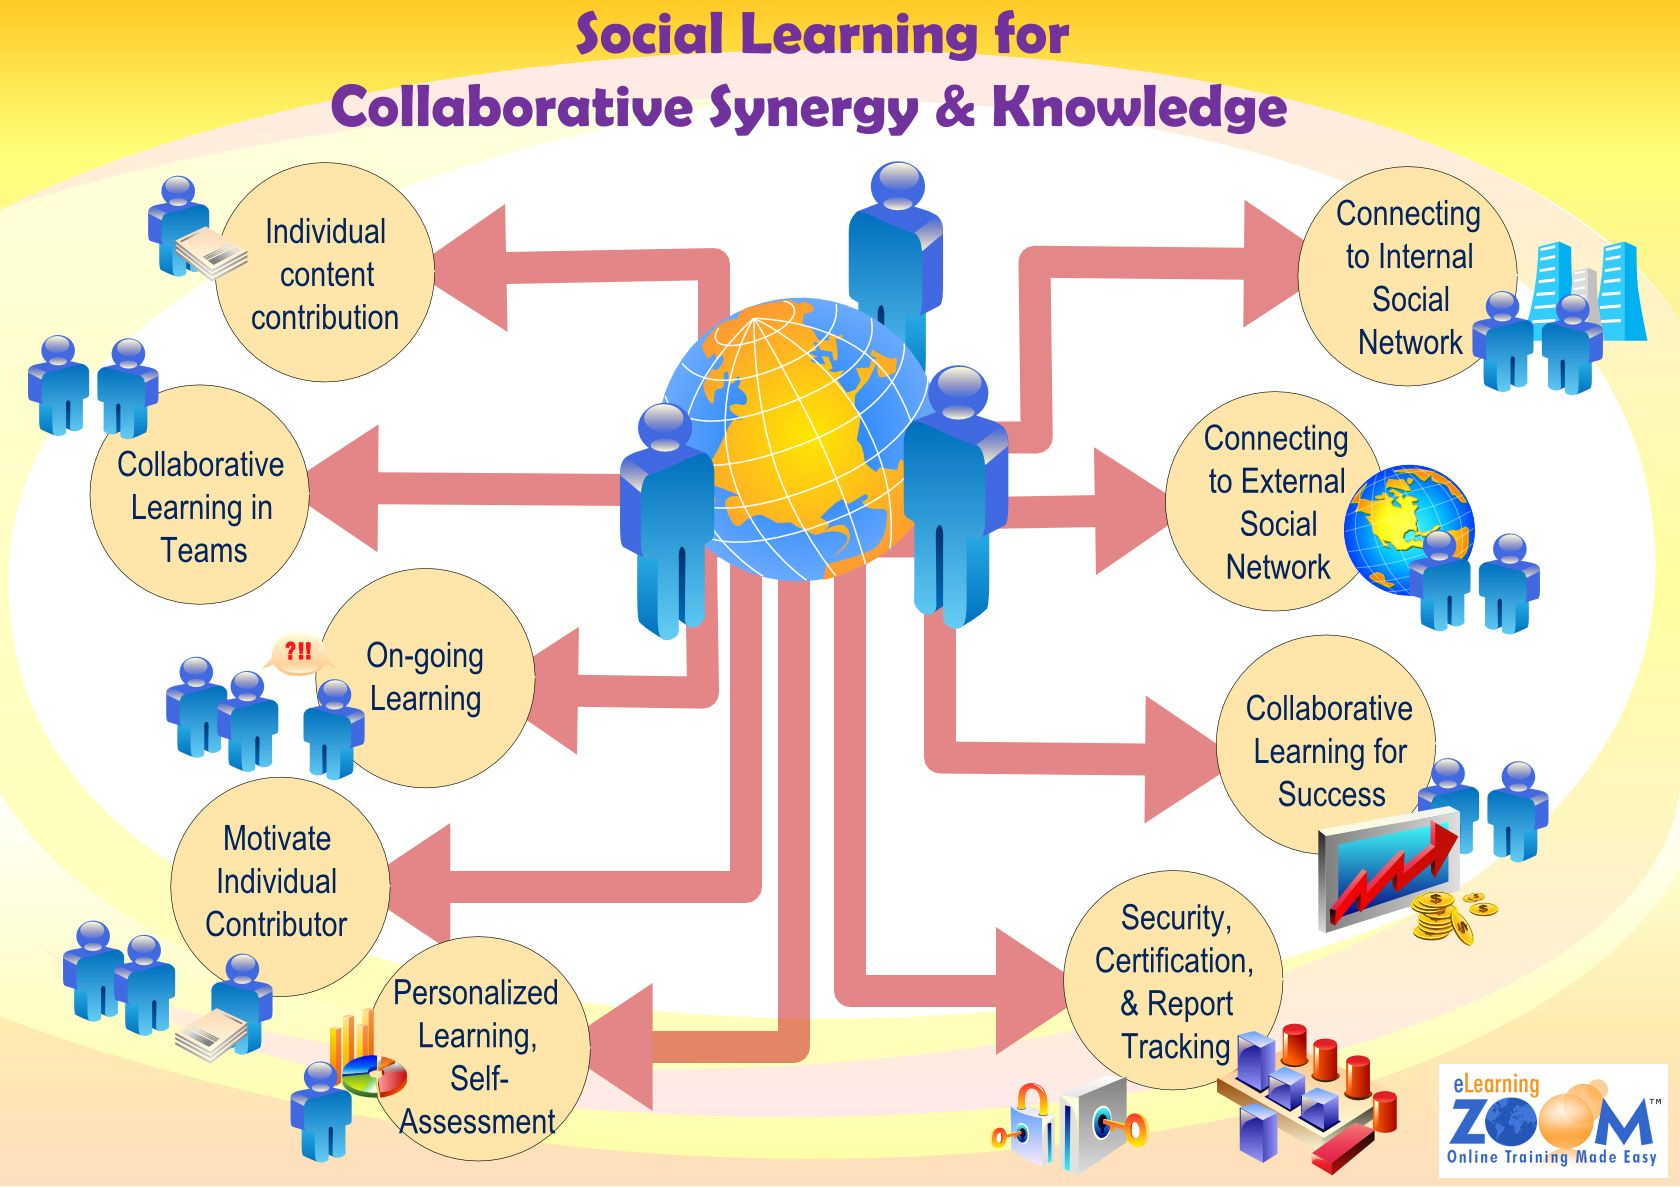 Social Learning is the new trend going forward for online training as it will help build knowledge management for company and organization.    www.eLearningZoom.com